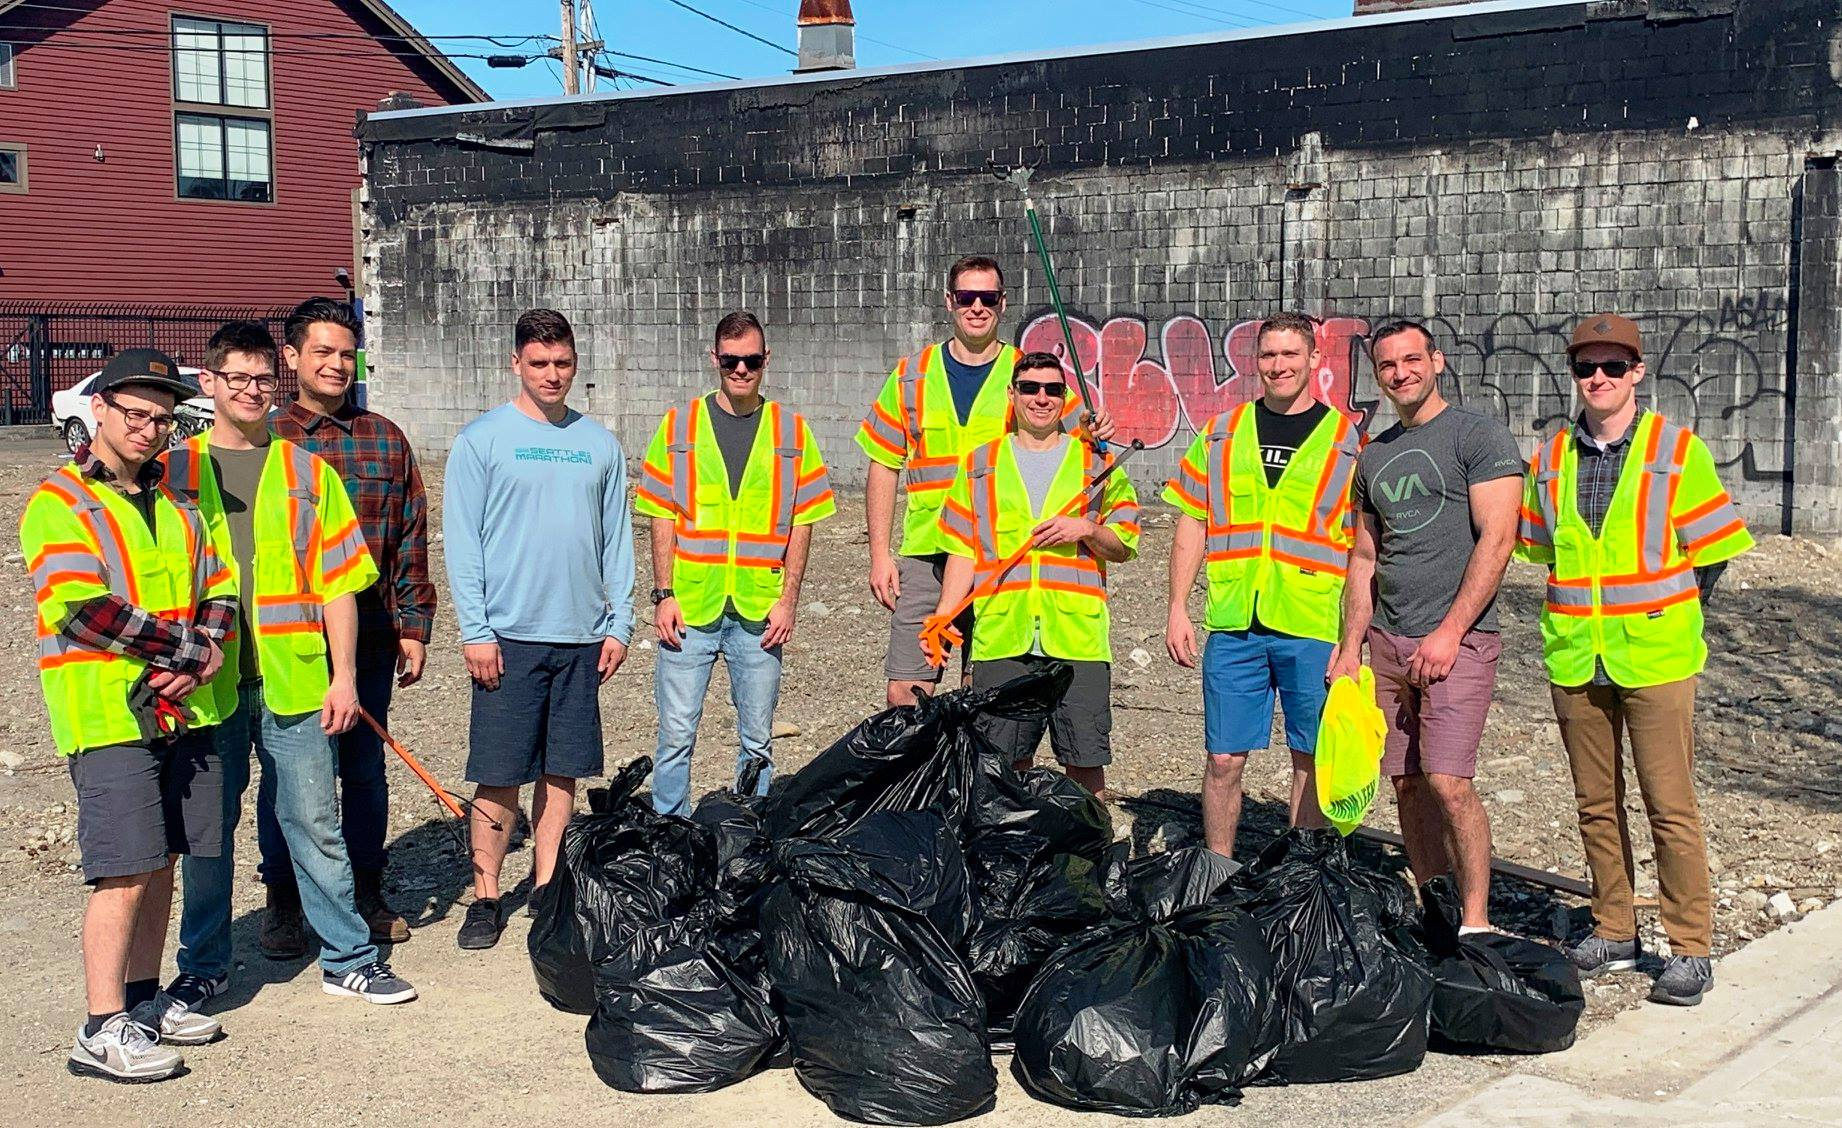 Adopt-a-Street volunteers help keep our City clean.